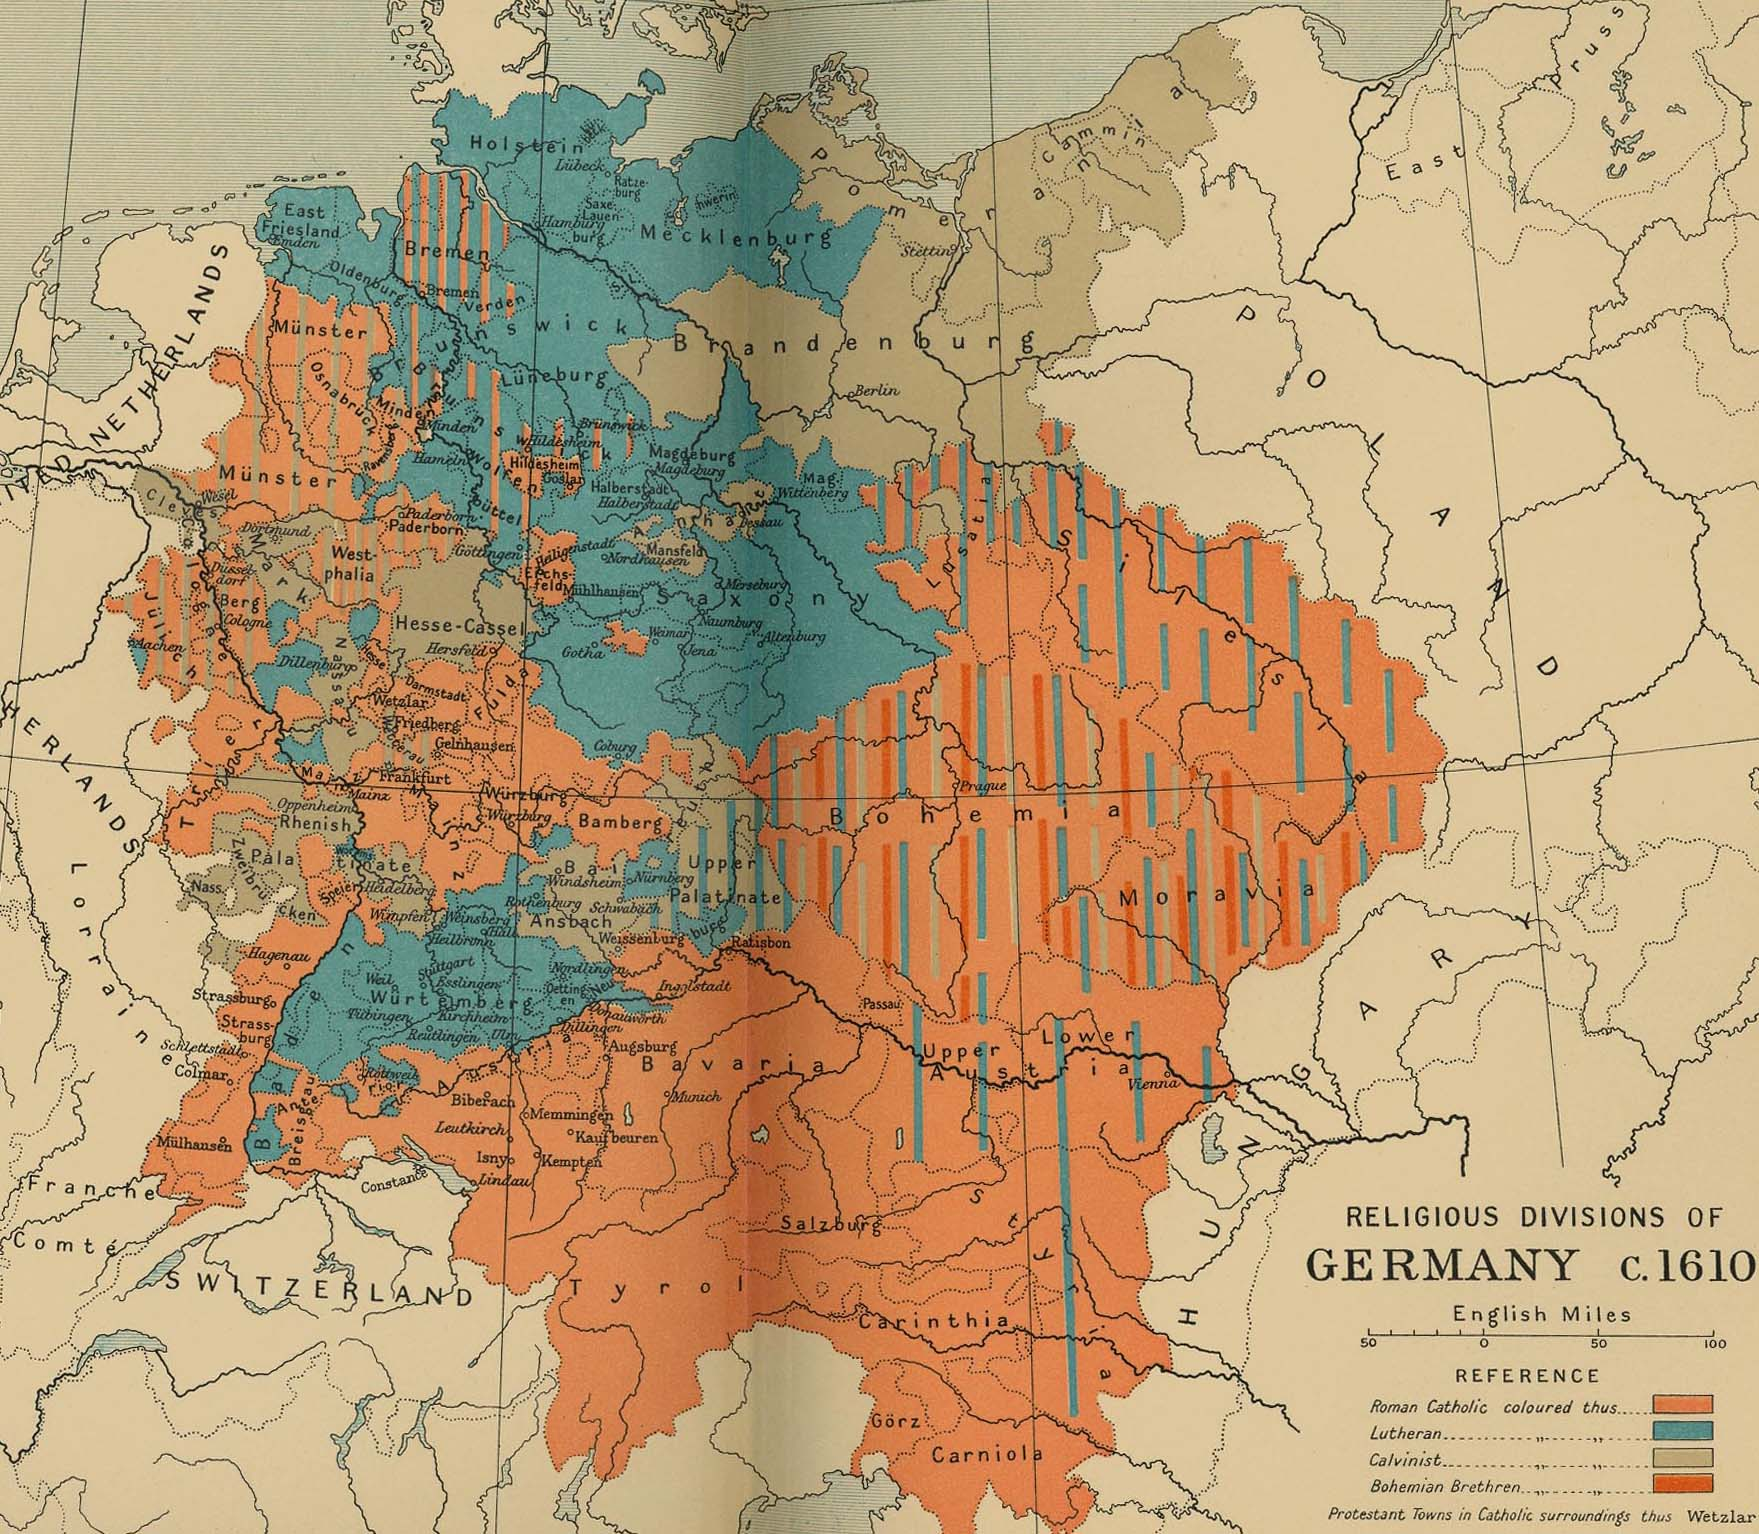 Viral News From Germany: Who Voted For The Nazi's In Germany